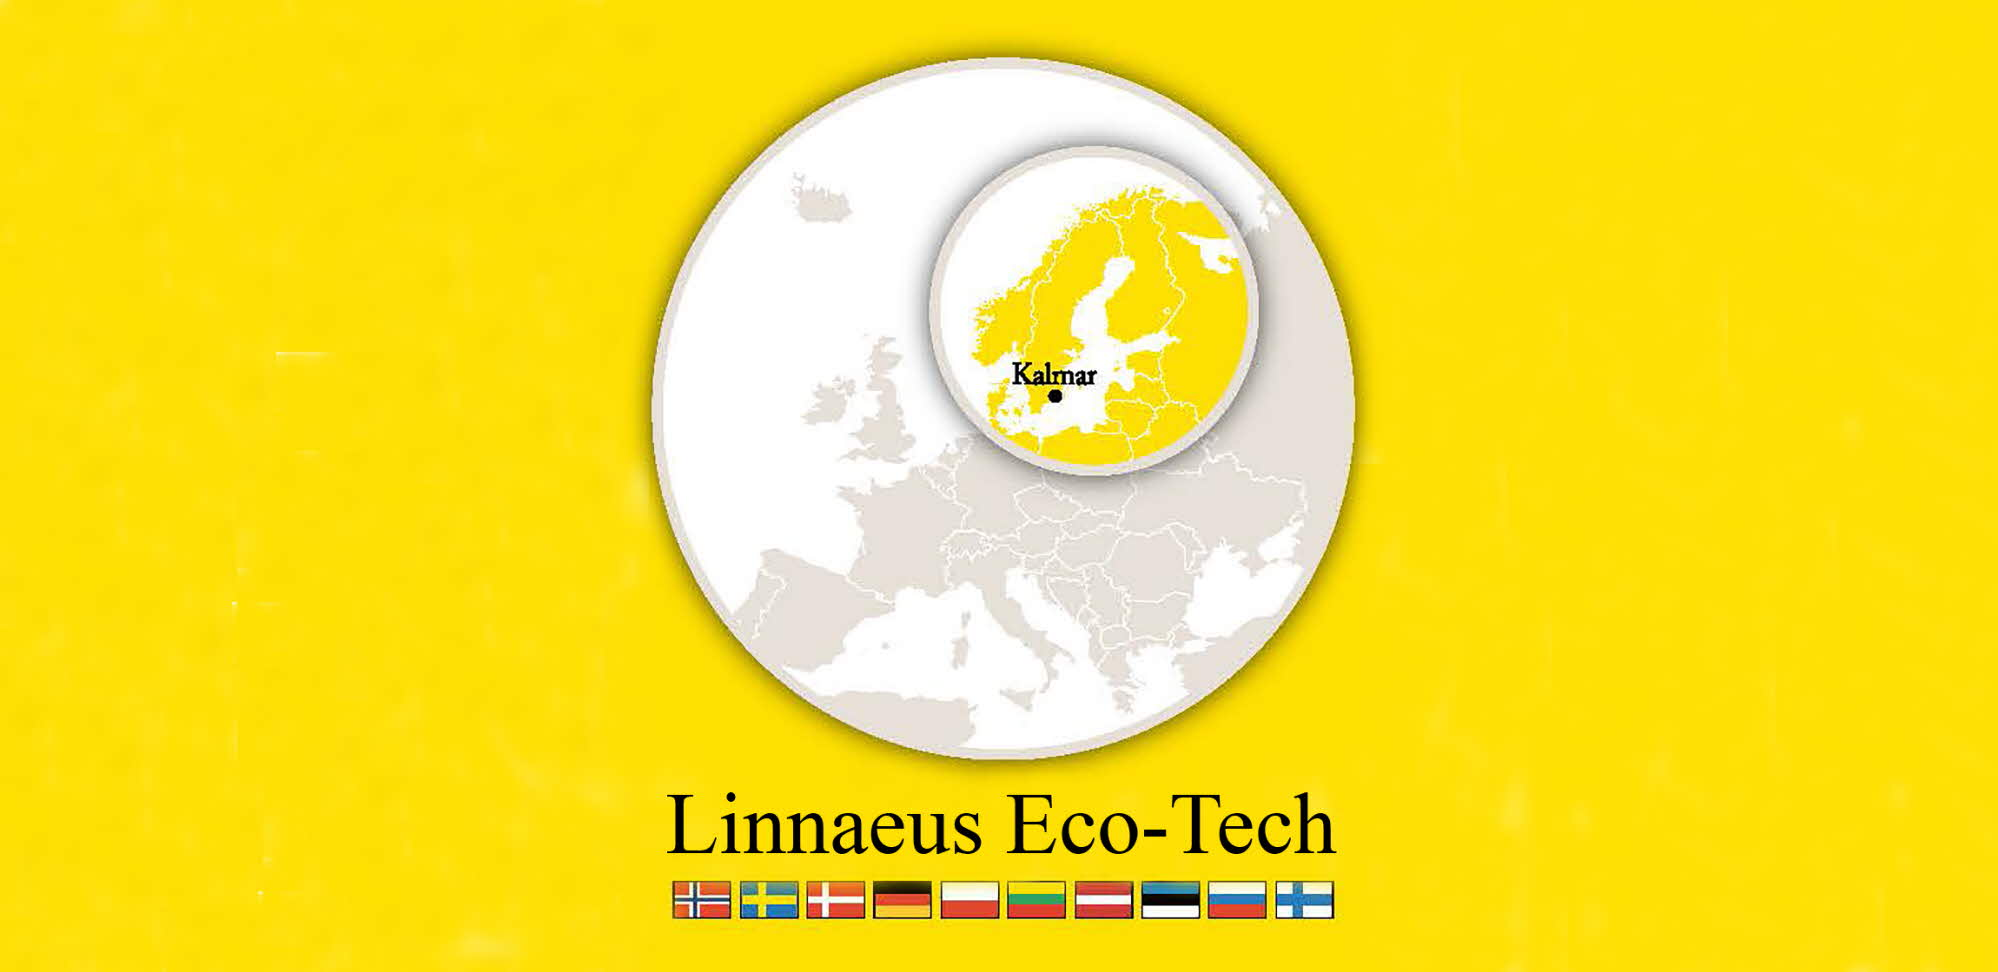 Linnaeus Eco-Tech 2018 logo